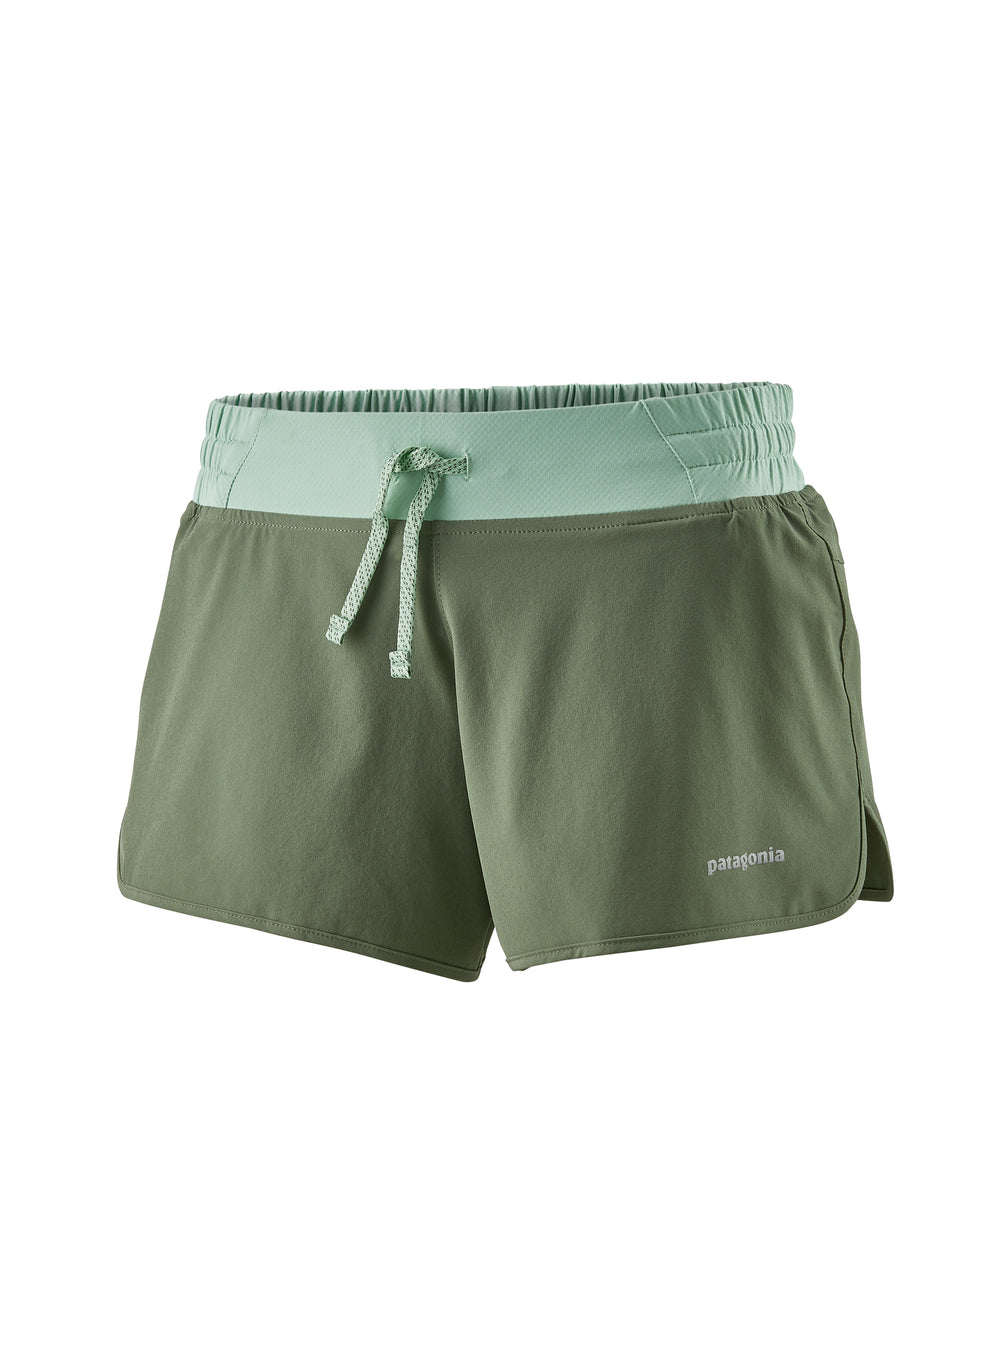 Patagonia Nine Trails Shorts - Women's